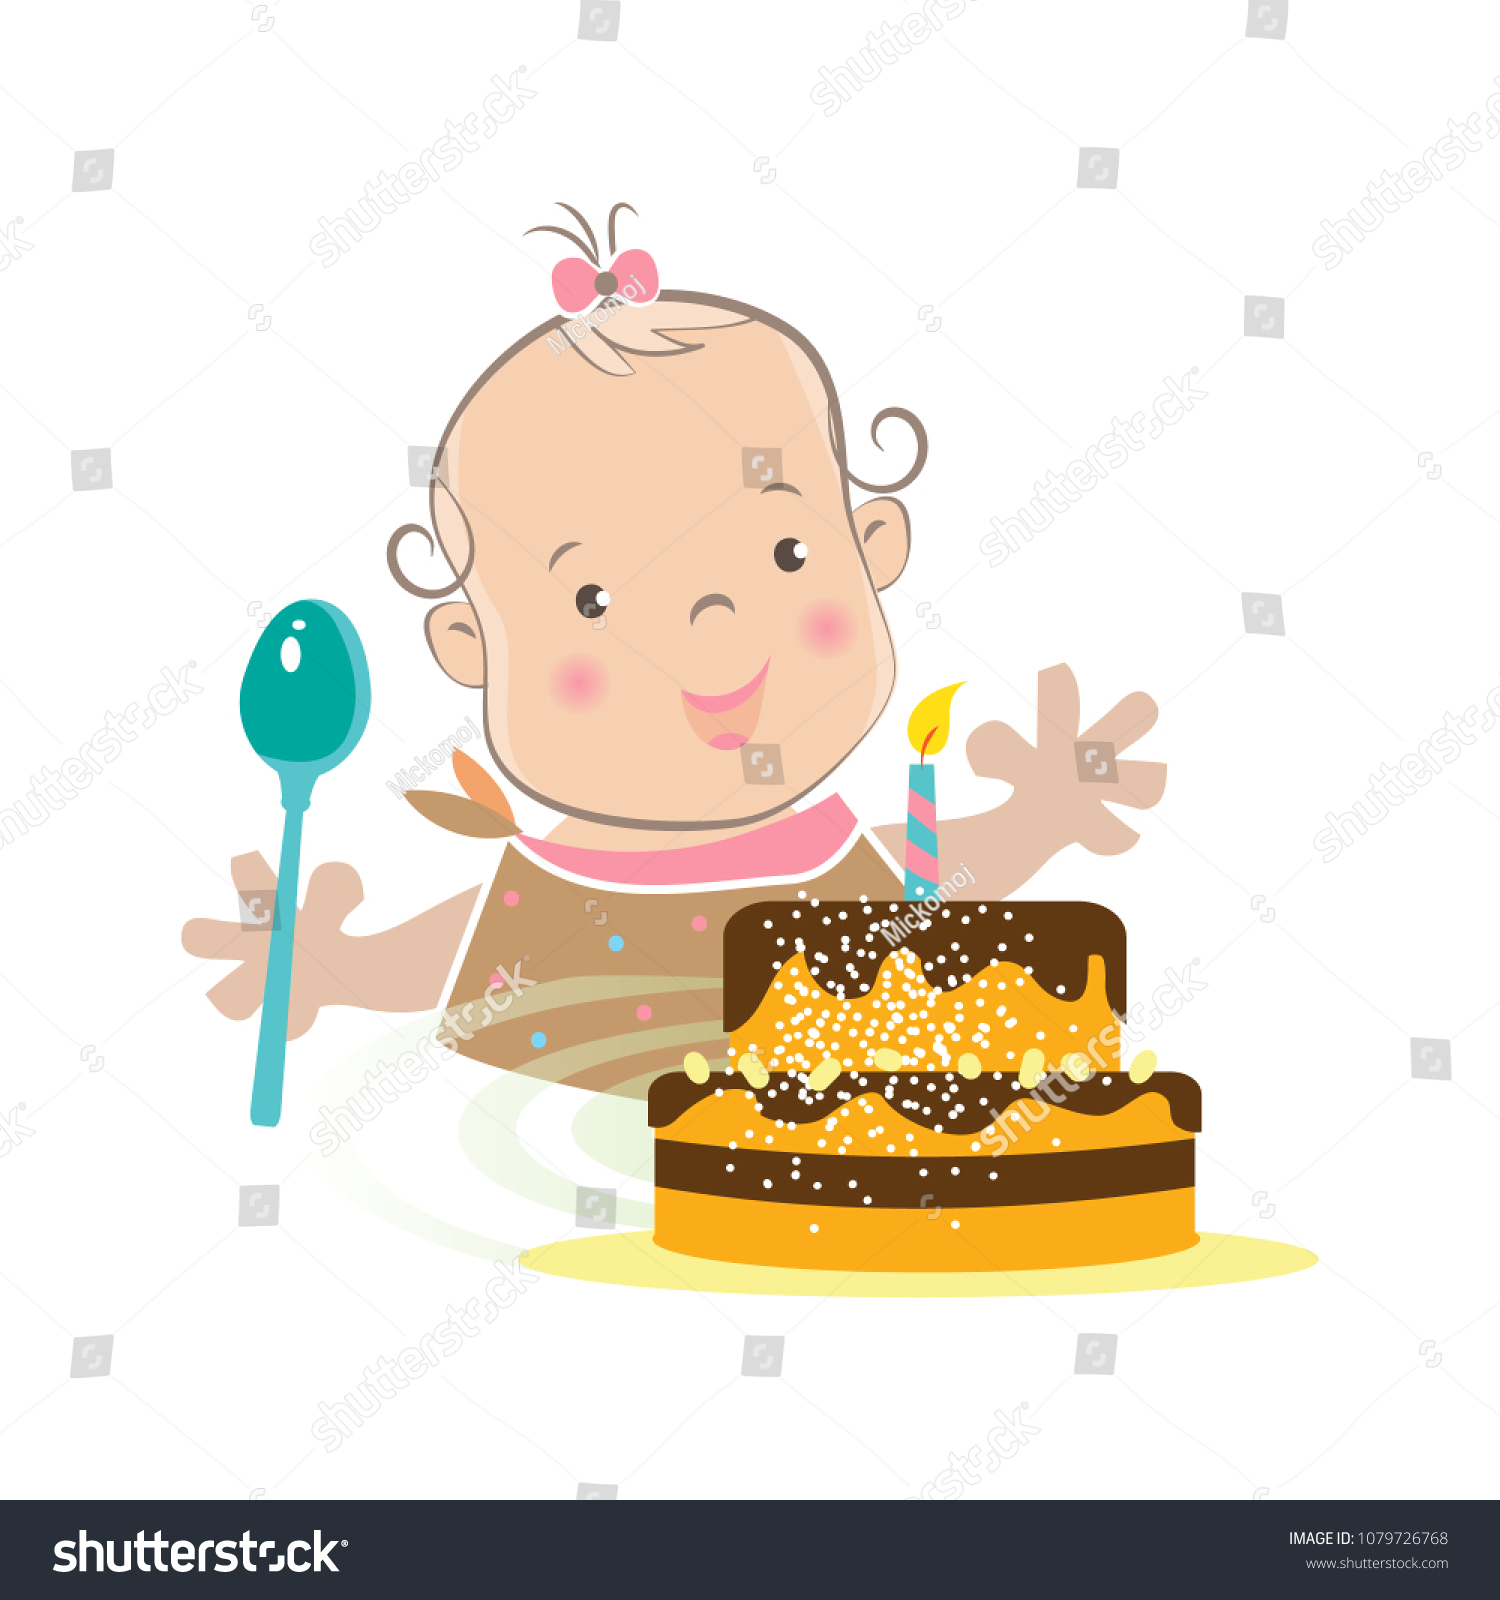 Swell Cute Baby Girl First Birthday Cake Stock Vector Royalty Free Funny Birthday Cards Online Elaedamsfinfo